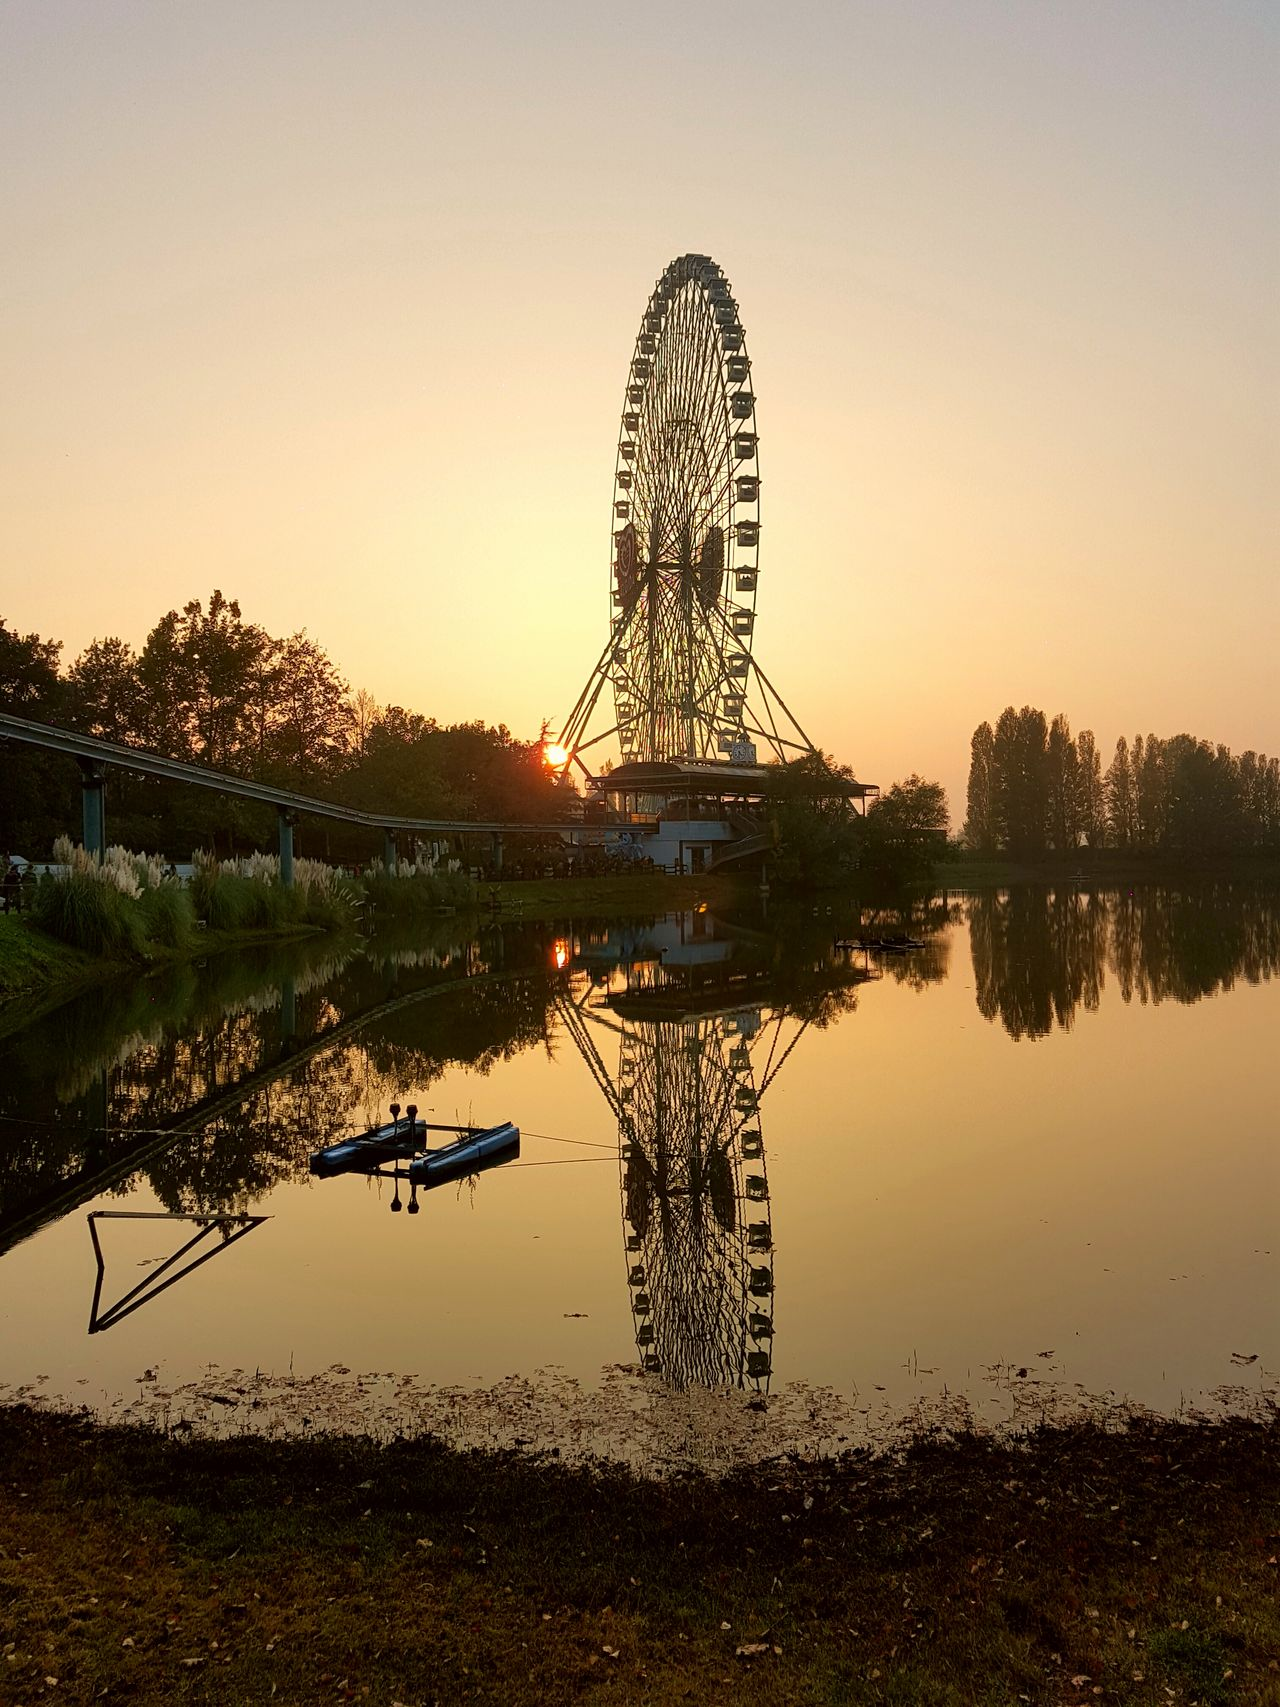 Reflection Sunset Water Sky Outdoors River Mirabilandia🎡🎢🎠 Tramonti_italiani Tramonto Ruota Panoramica Bellissima❤ Personal Perspective Leisure Activity Samsung Galaxy S7 Edge Punti Di Vista Feel The Journey EyeEm Best Shots 2016😍 Giocare Giocareinsieme Reflection Sky Porn Sky_collection The EyeEm World Tour Riflesso Di Luce